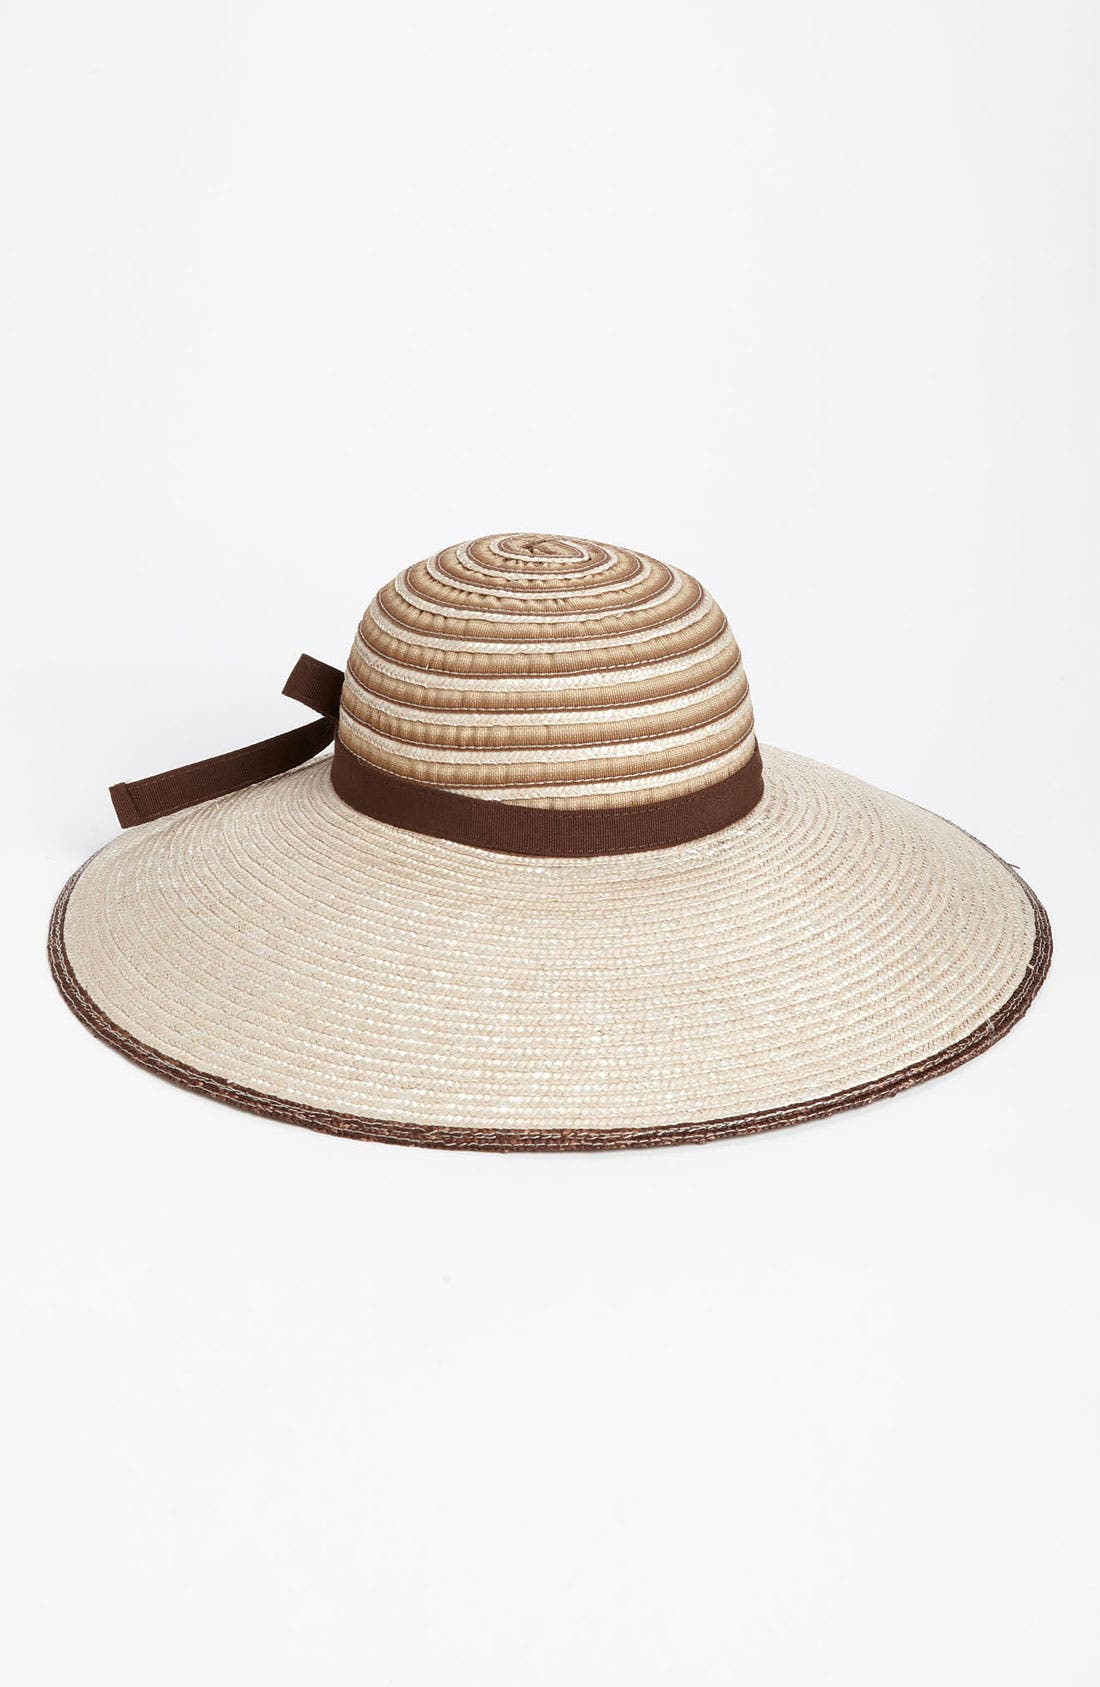 Alternate Image 1 Selected - Nordstrom Dégradé Ribbon Sun Hat